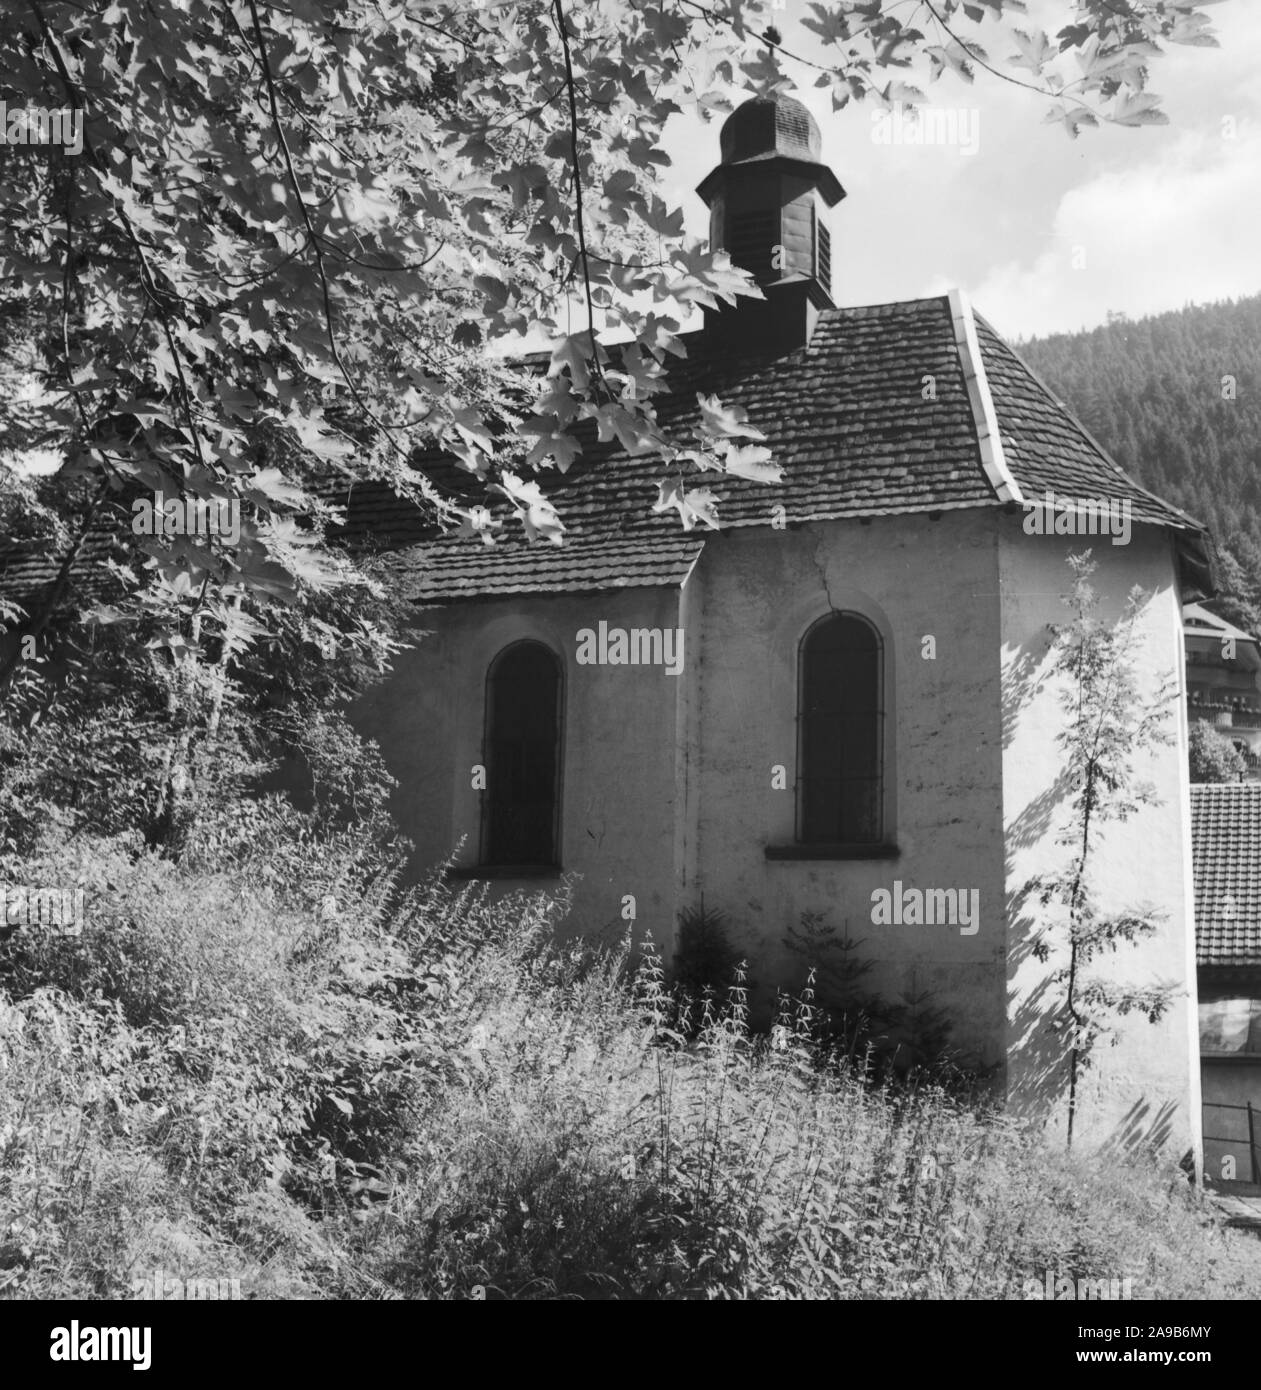 Summer in the Black Forest, Germany 1930s. Stock Photo